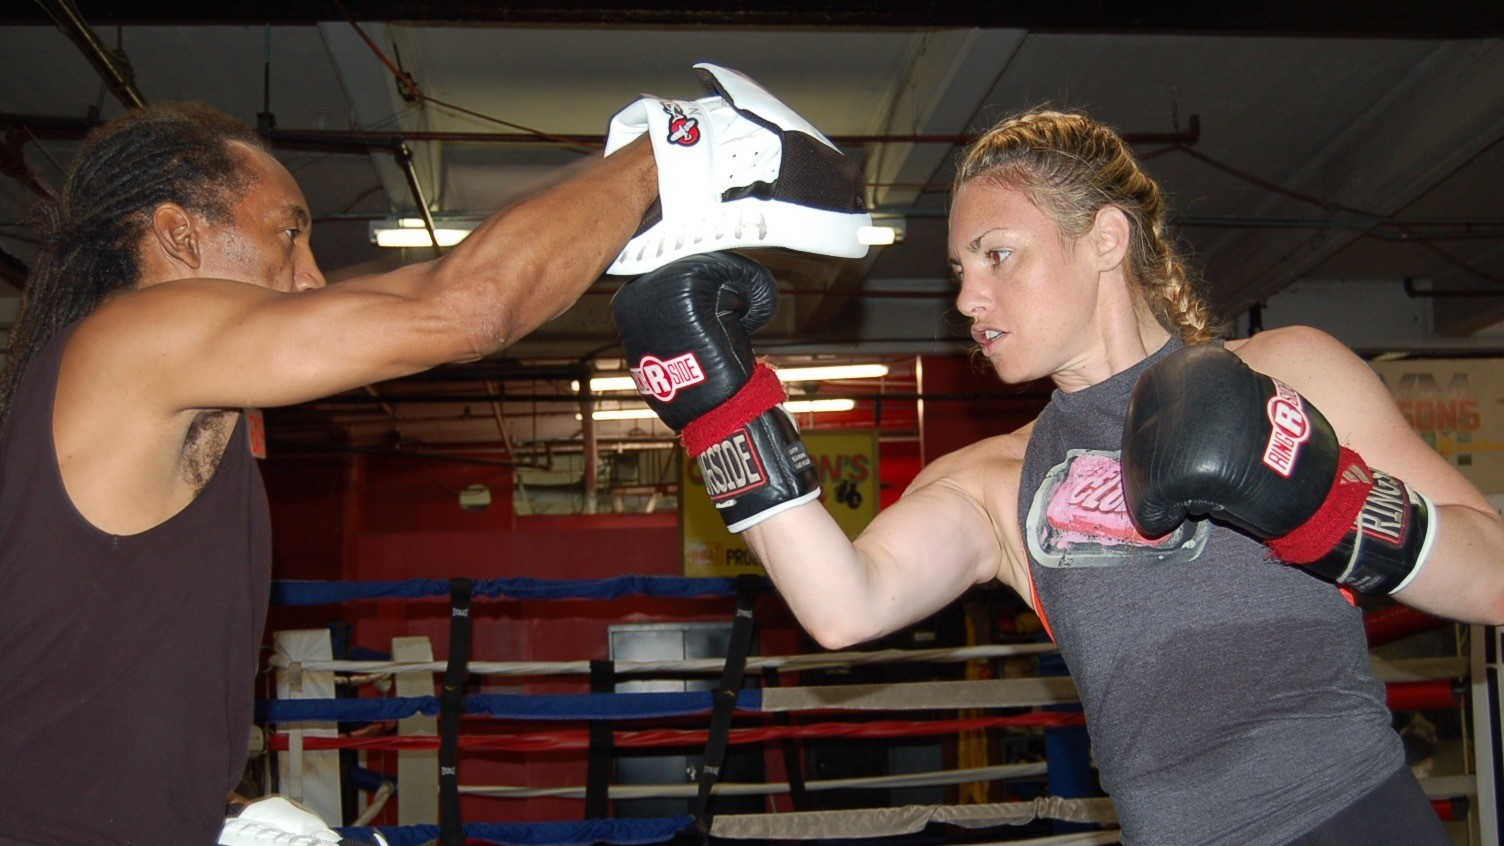 Heather Hardy Doesn't Back Down from Any Fight